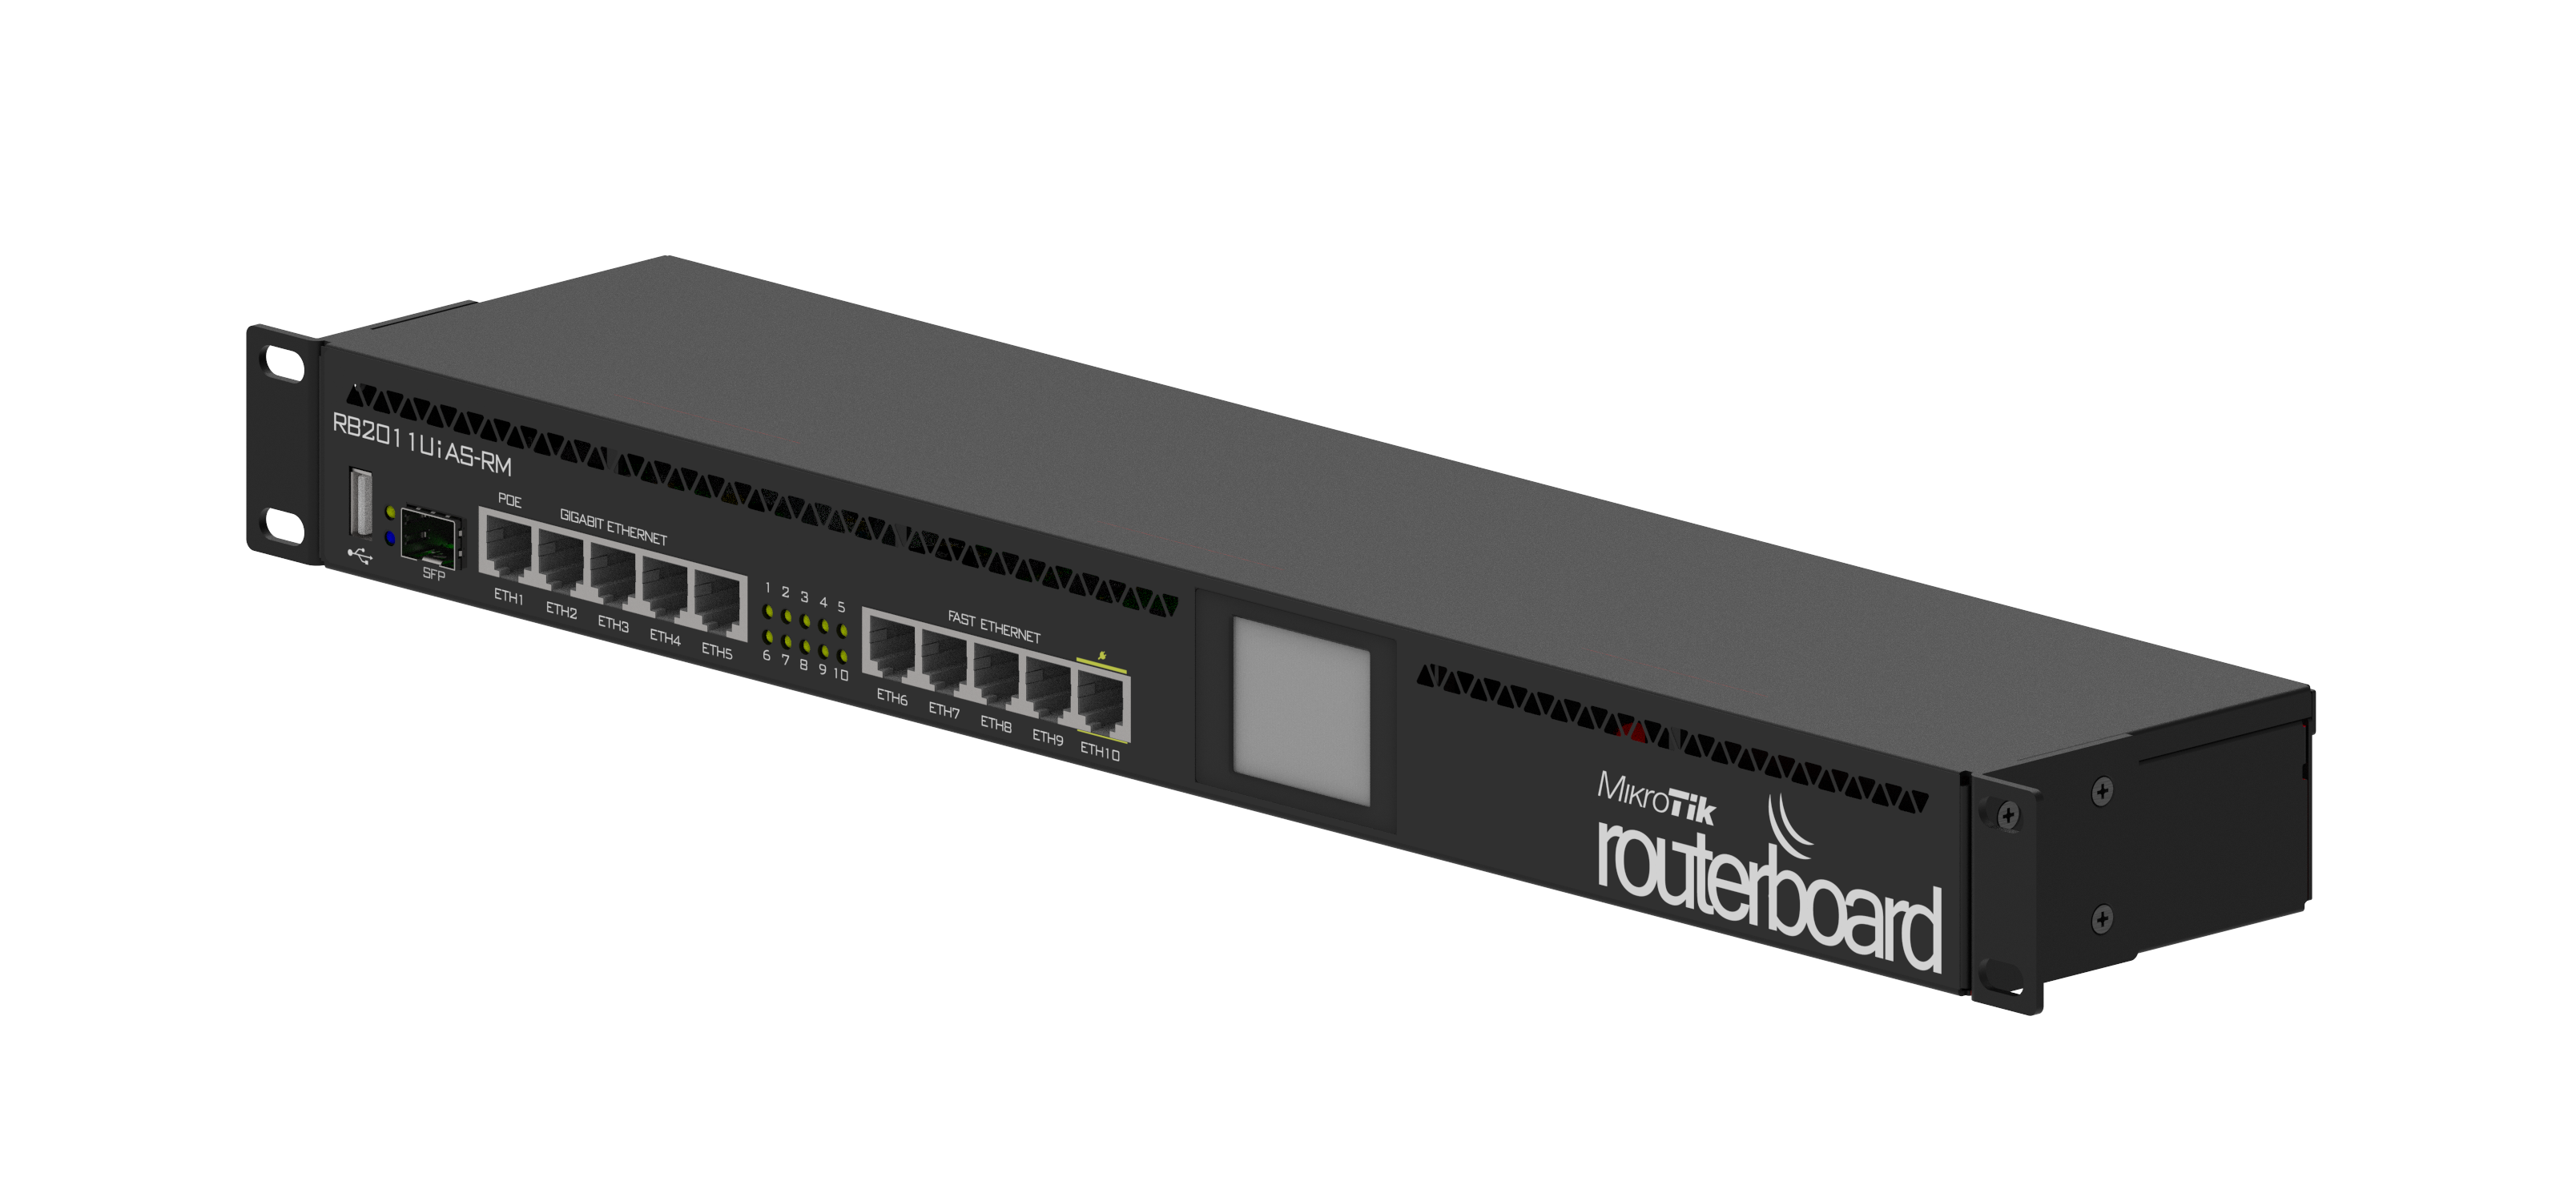 MIKROTIK RB2011LS ROUTER BOARD DRIVERS DOWNLOAD